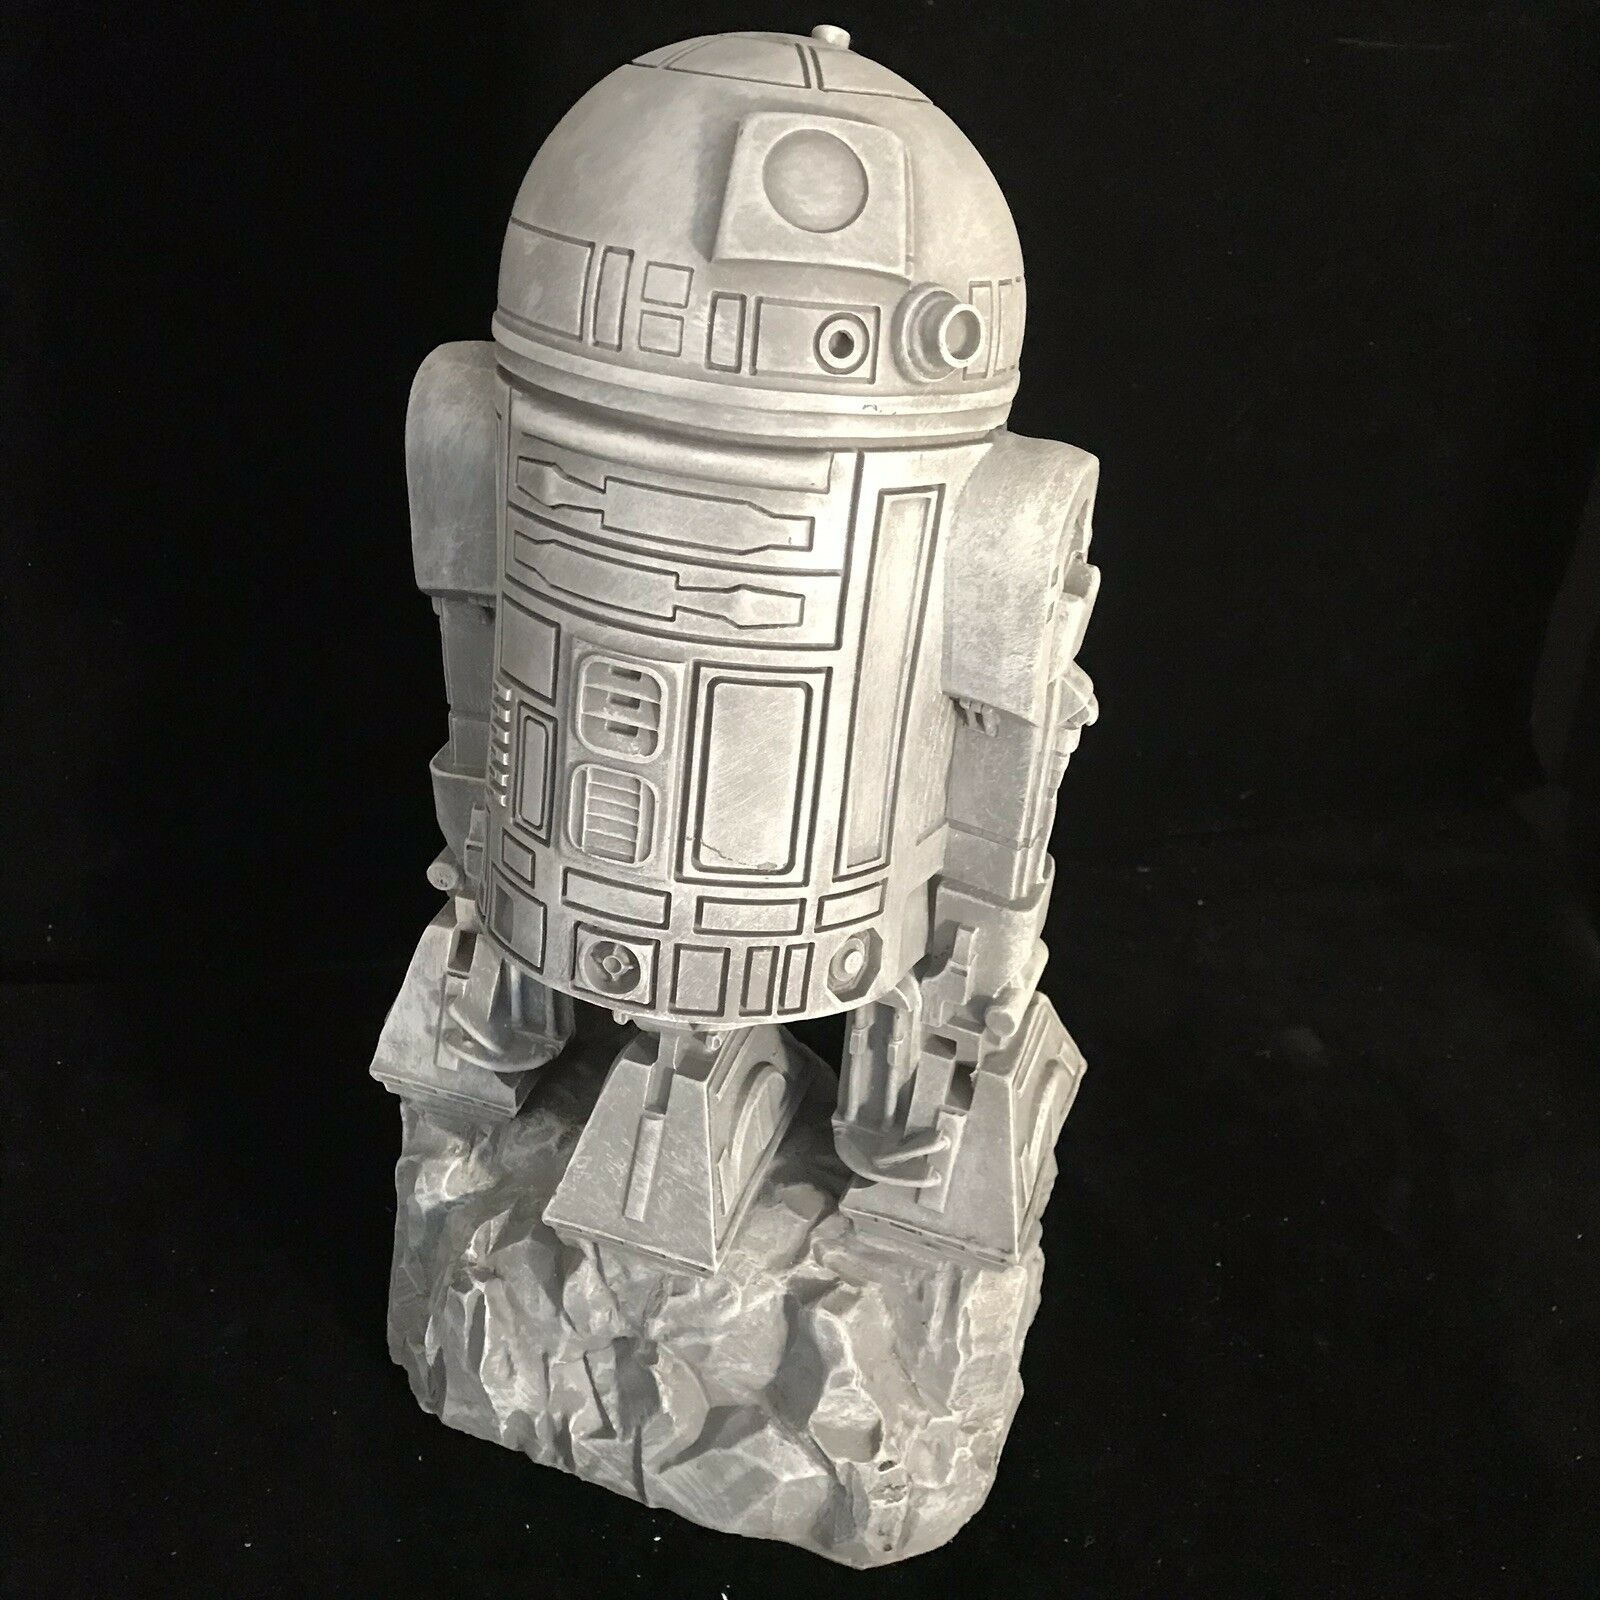 Stern Wars R2-D2 16  Wirkung Figure Garden Statue or Home Ornament R2D2